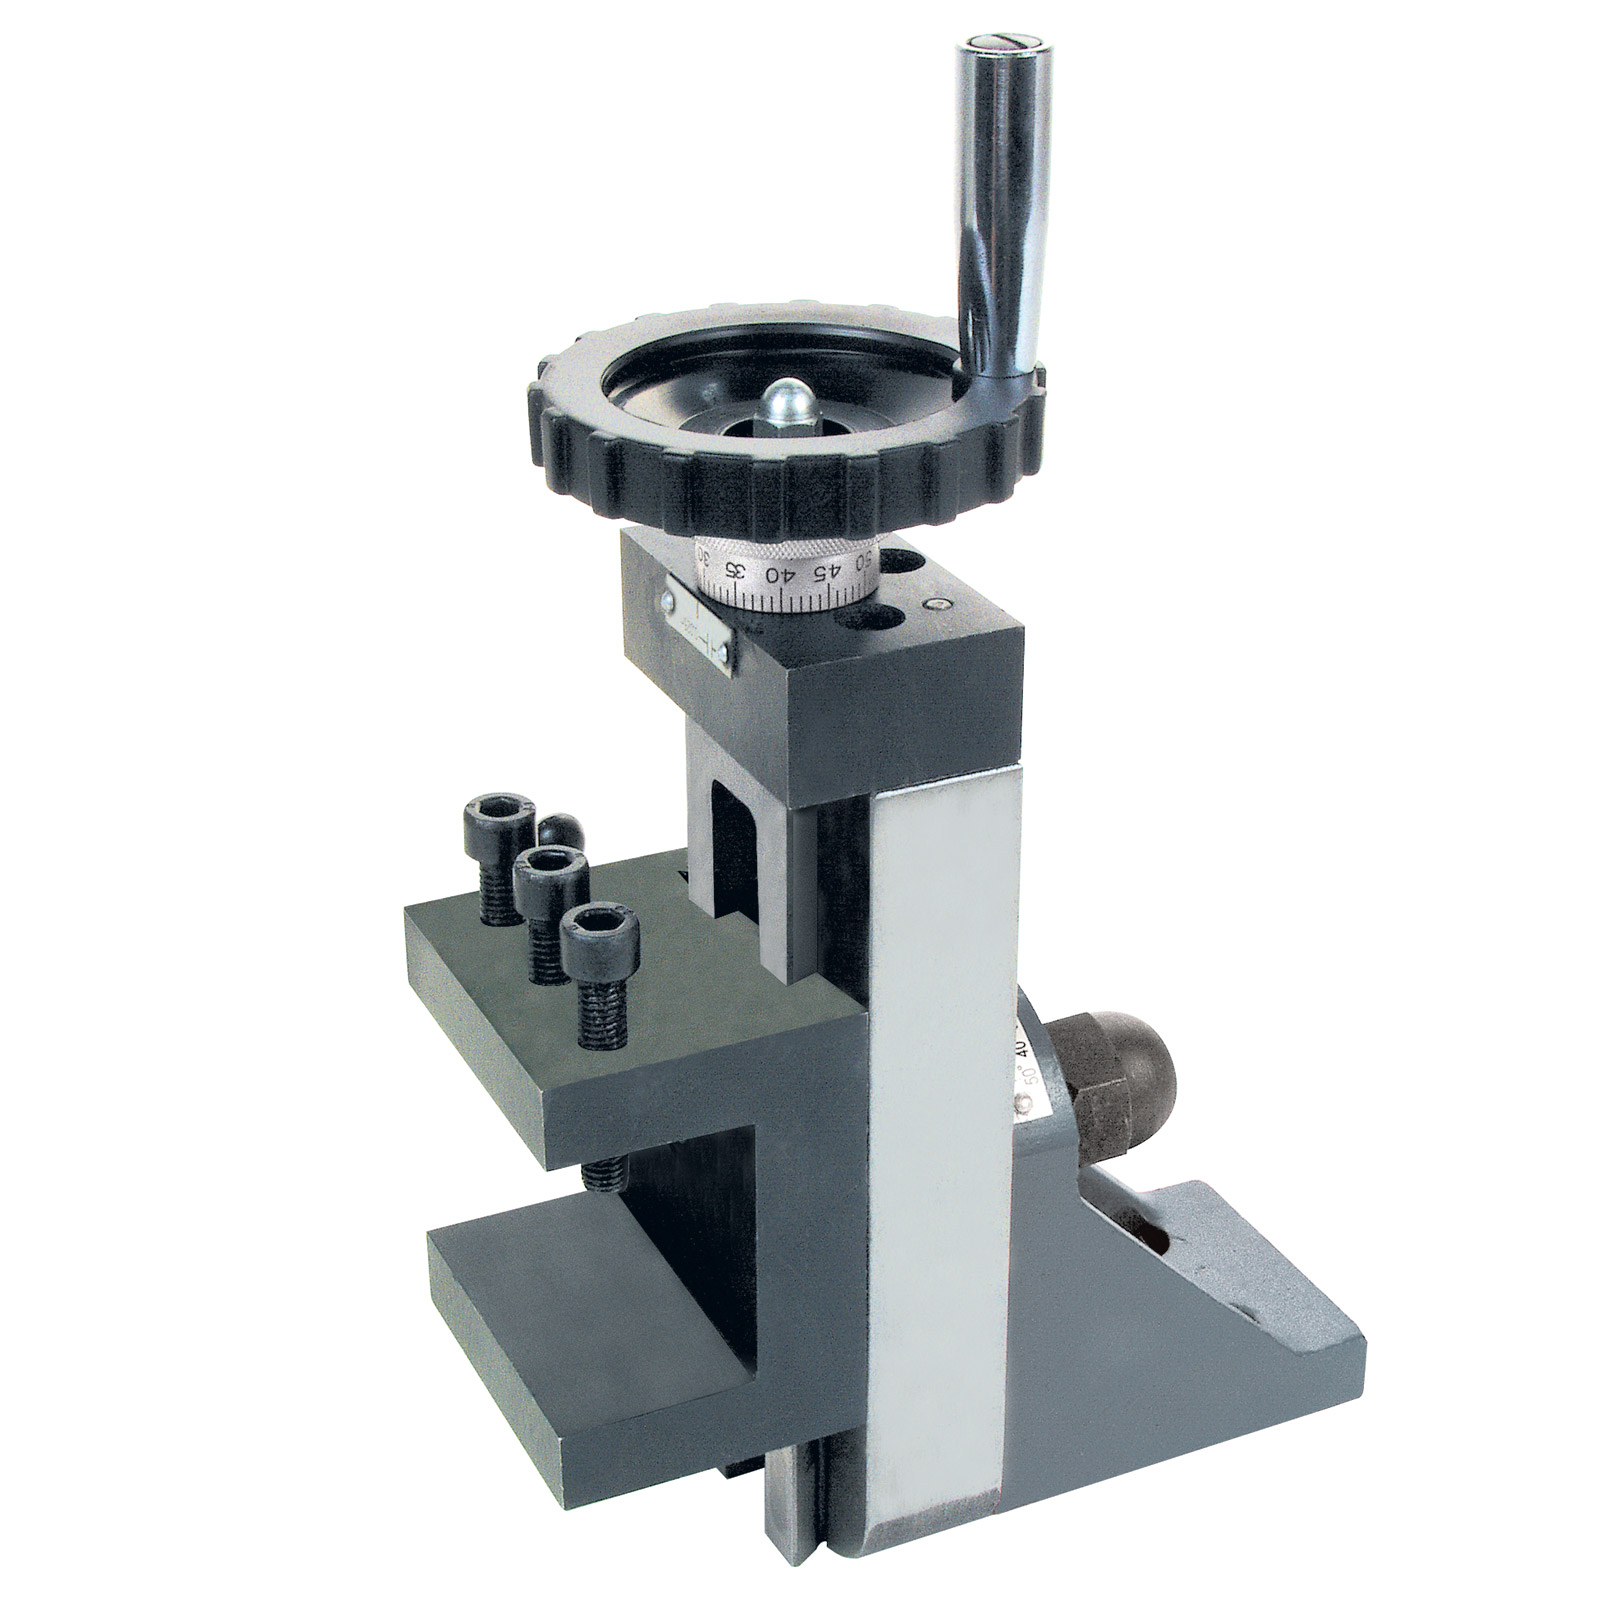 MINI LATHE MILLING ATTACHMENT